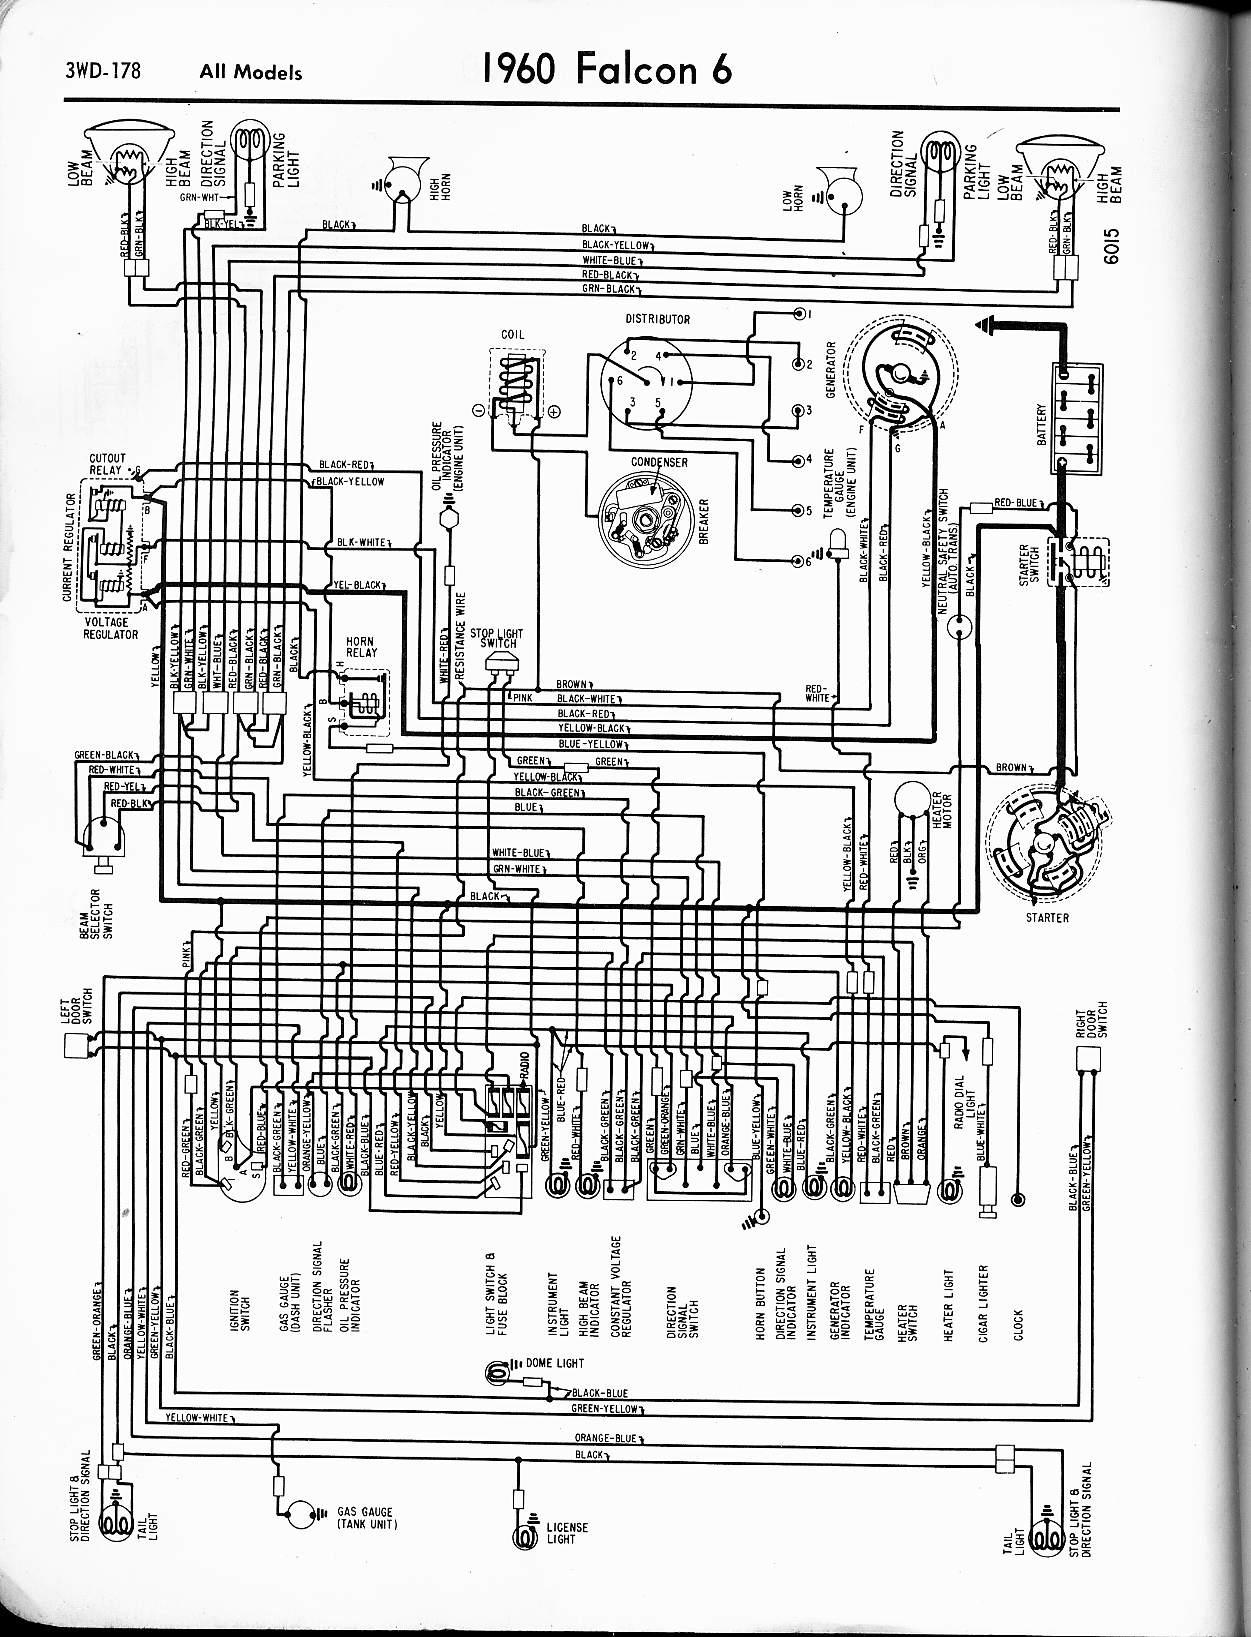 hight resolution of 1965 ford falcon wiring diagram wiring diagram load 1965 ford f100 steering column wiring diagram 1965 f100 wiring diagram